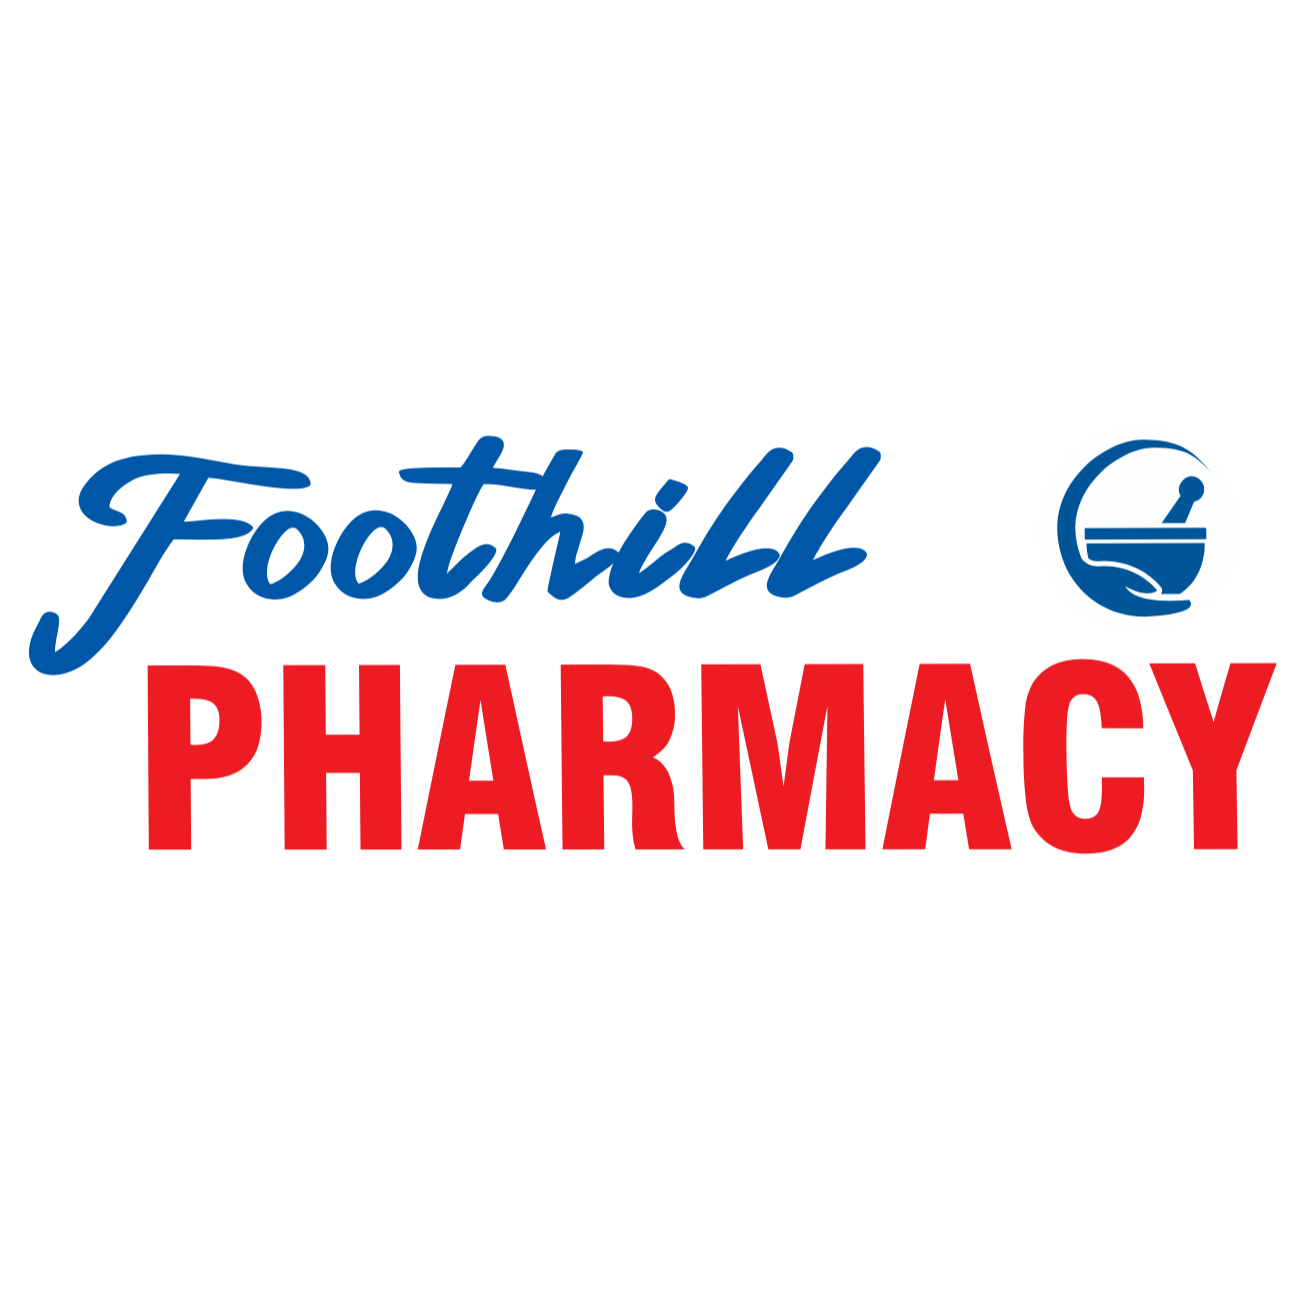 Foothill Pharmacy